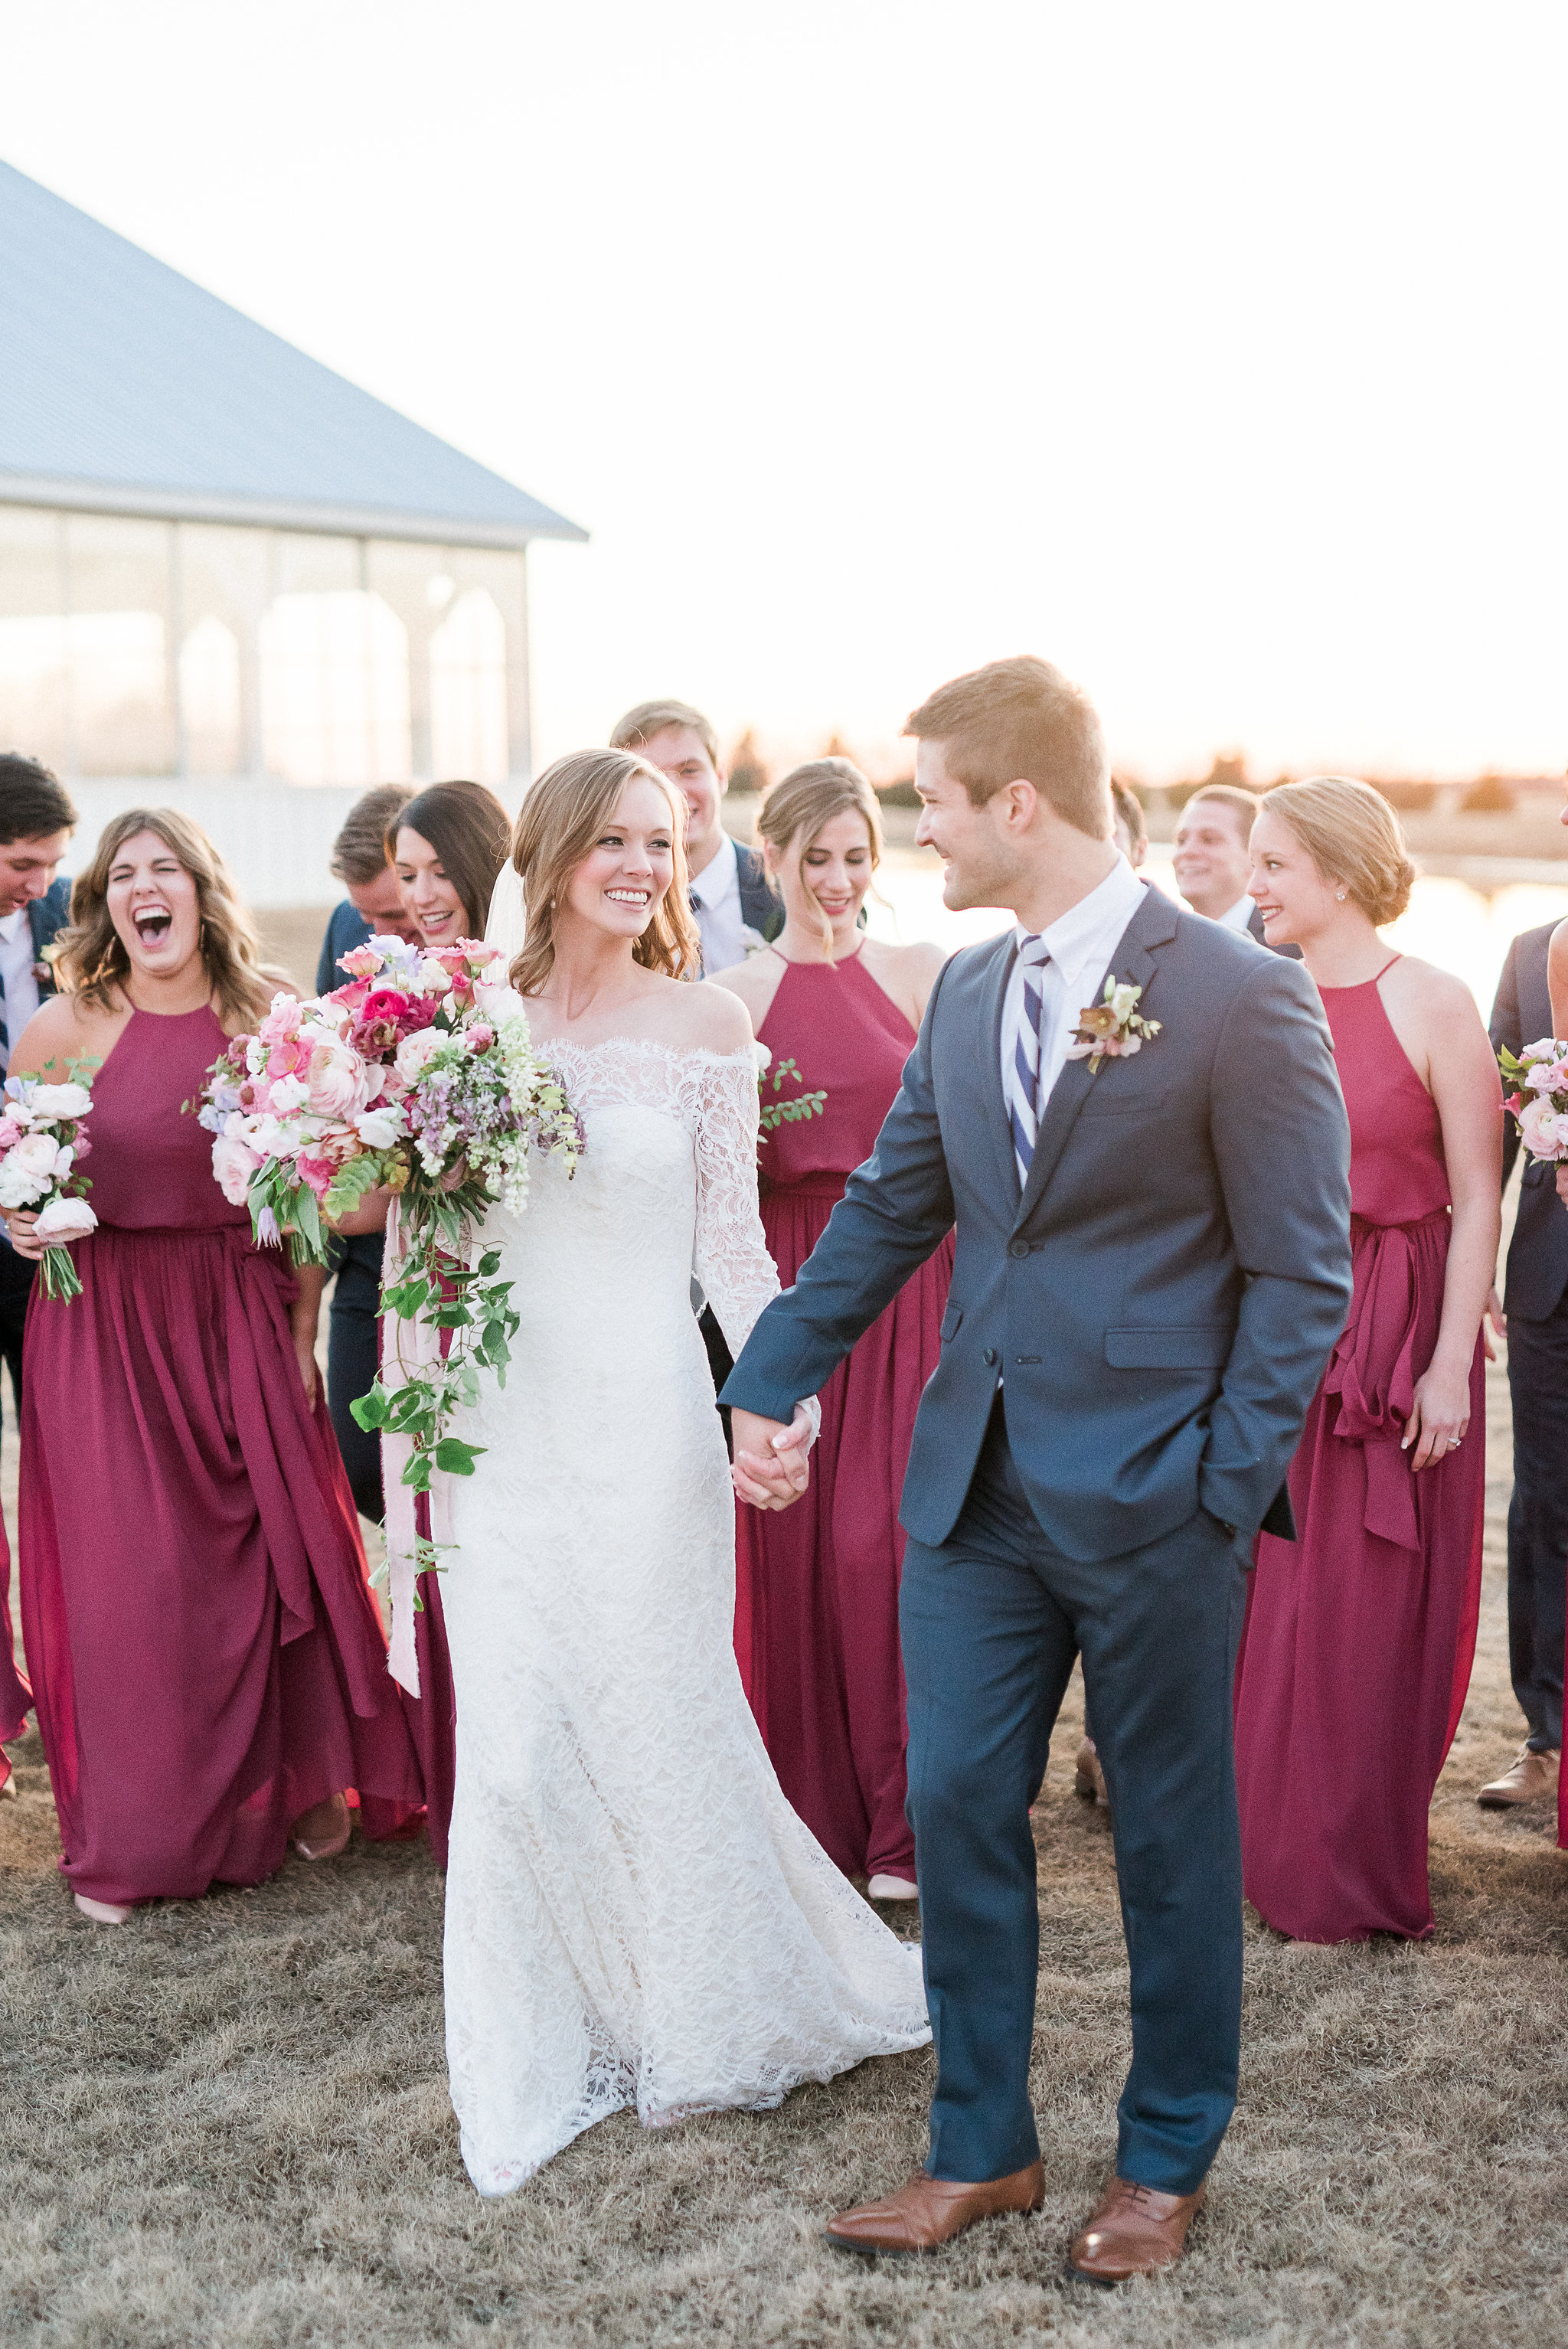 Vibrant Winter Wedding - Lindsey Brunkv